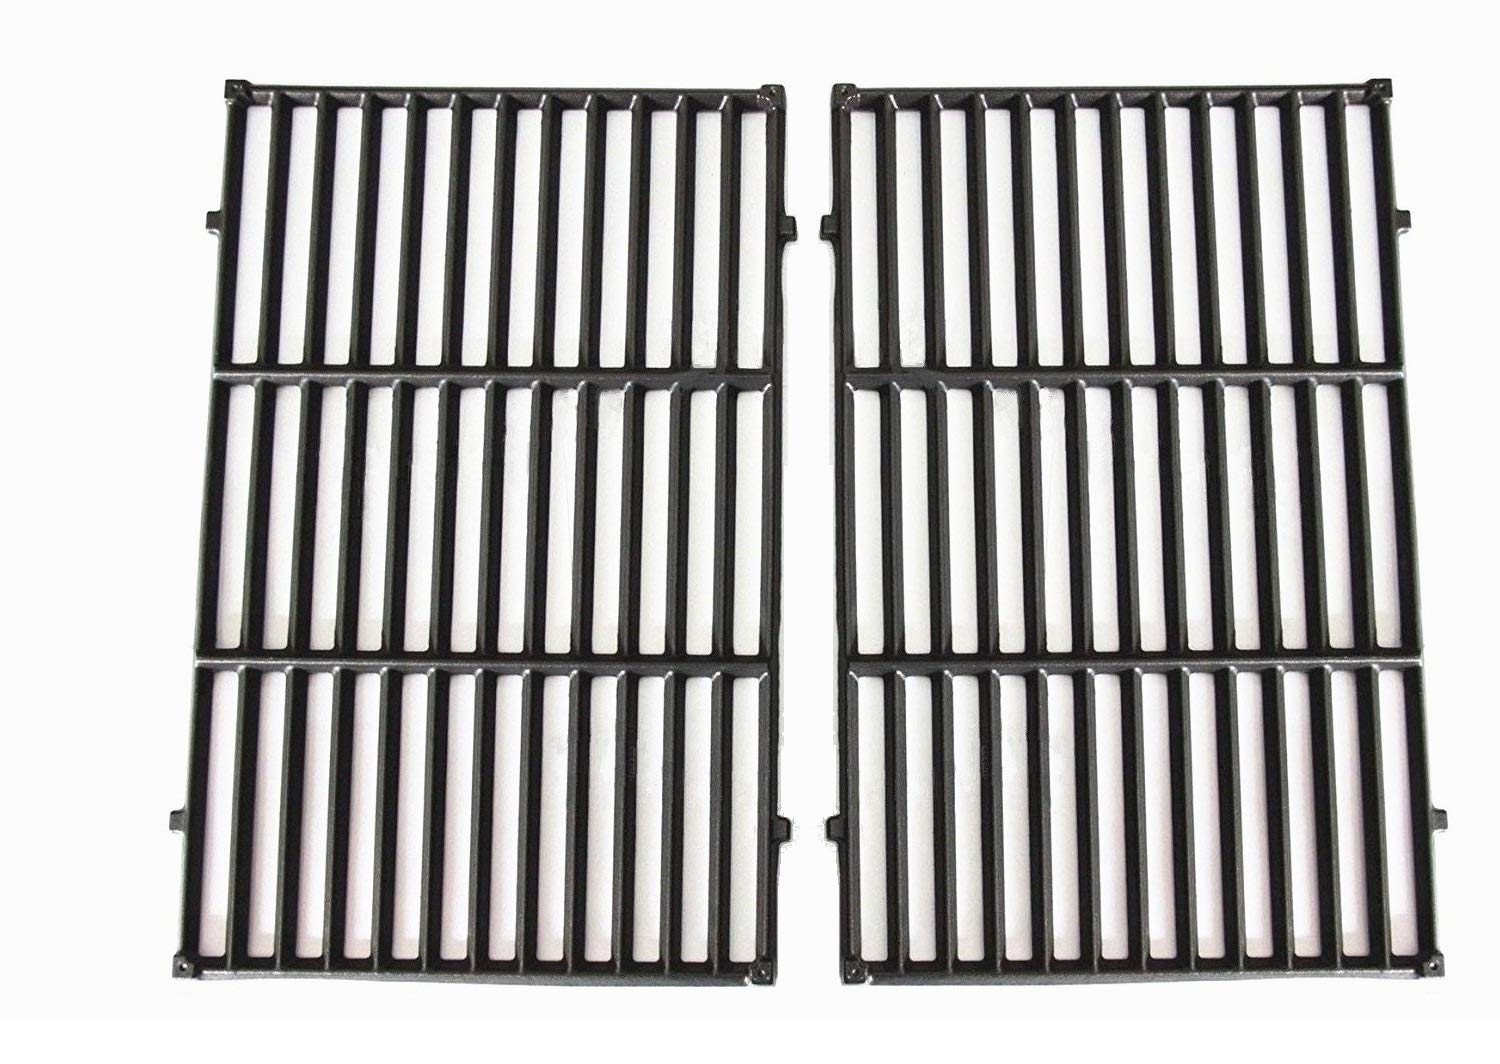 Hongso 19.5'' Cast Iron Cooking Grid Grates Replacement for Weber Genesis E-310, E-320, E-330, Genesis S-310, S-320, S-330, Genesis EP-310, EP-320, EP-330 Gas Grill, Set of 2, 7524 307524 40312501